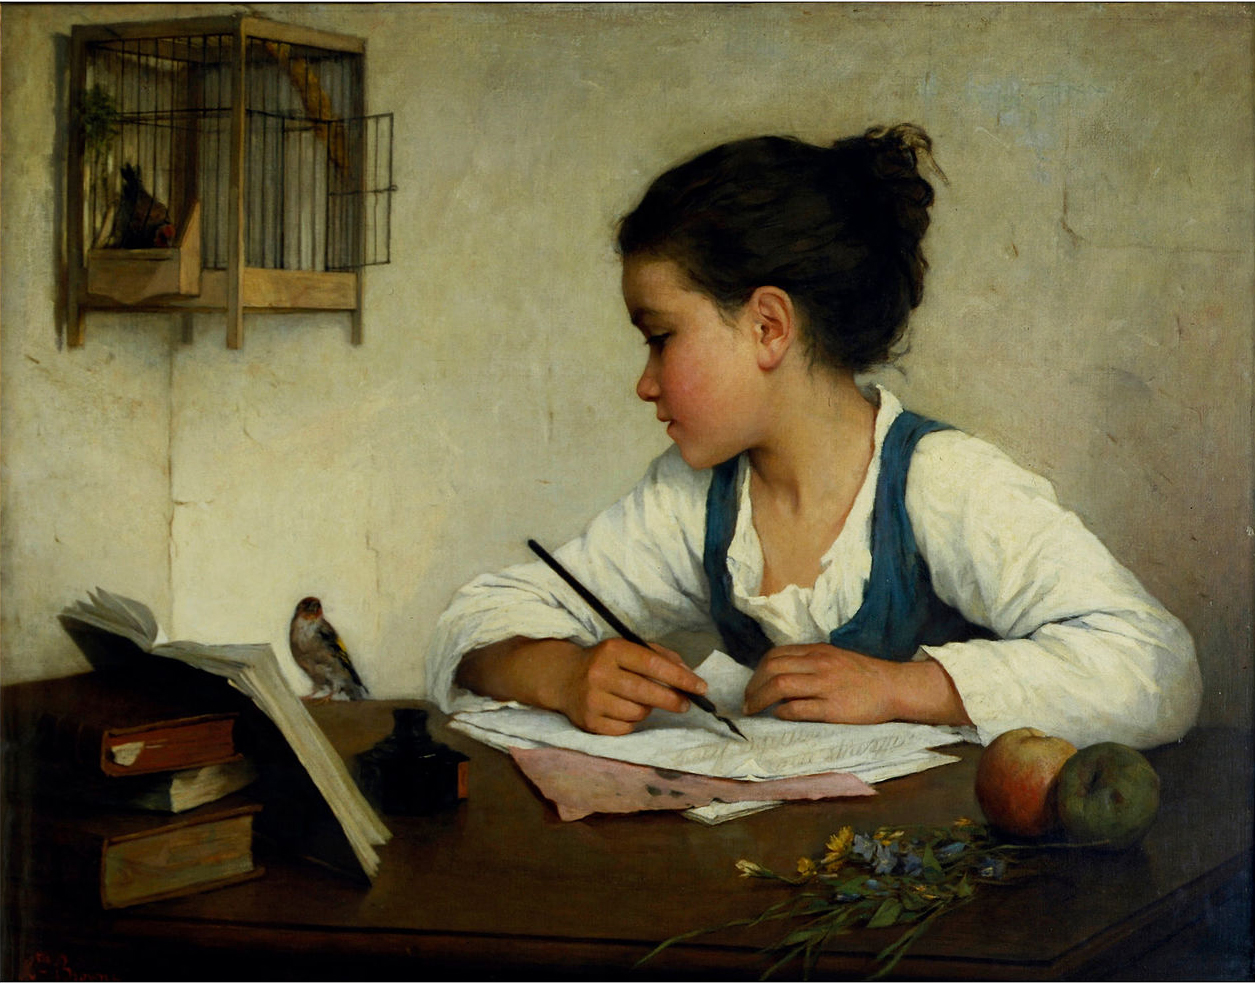 Browne, Henriette - A Girl Writing; The Pet Goldfinch, 1874